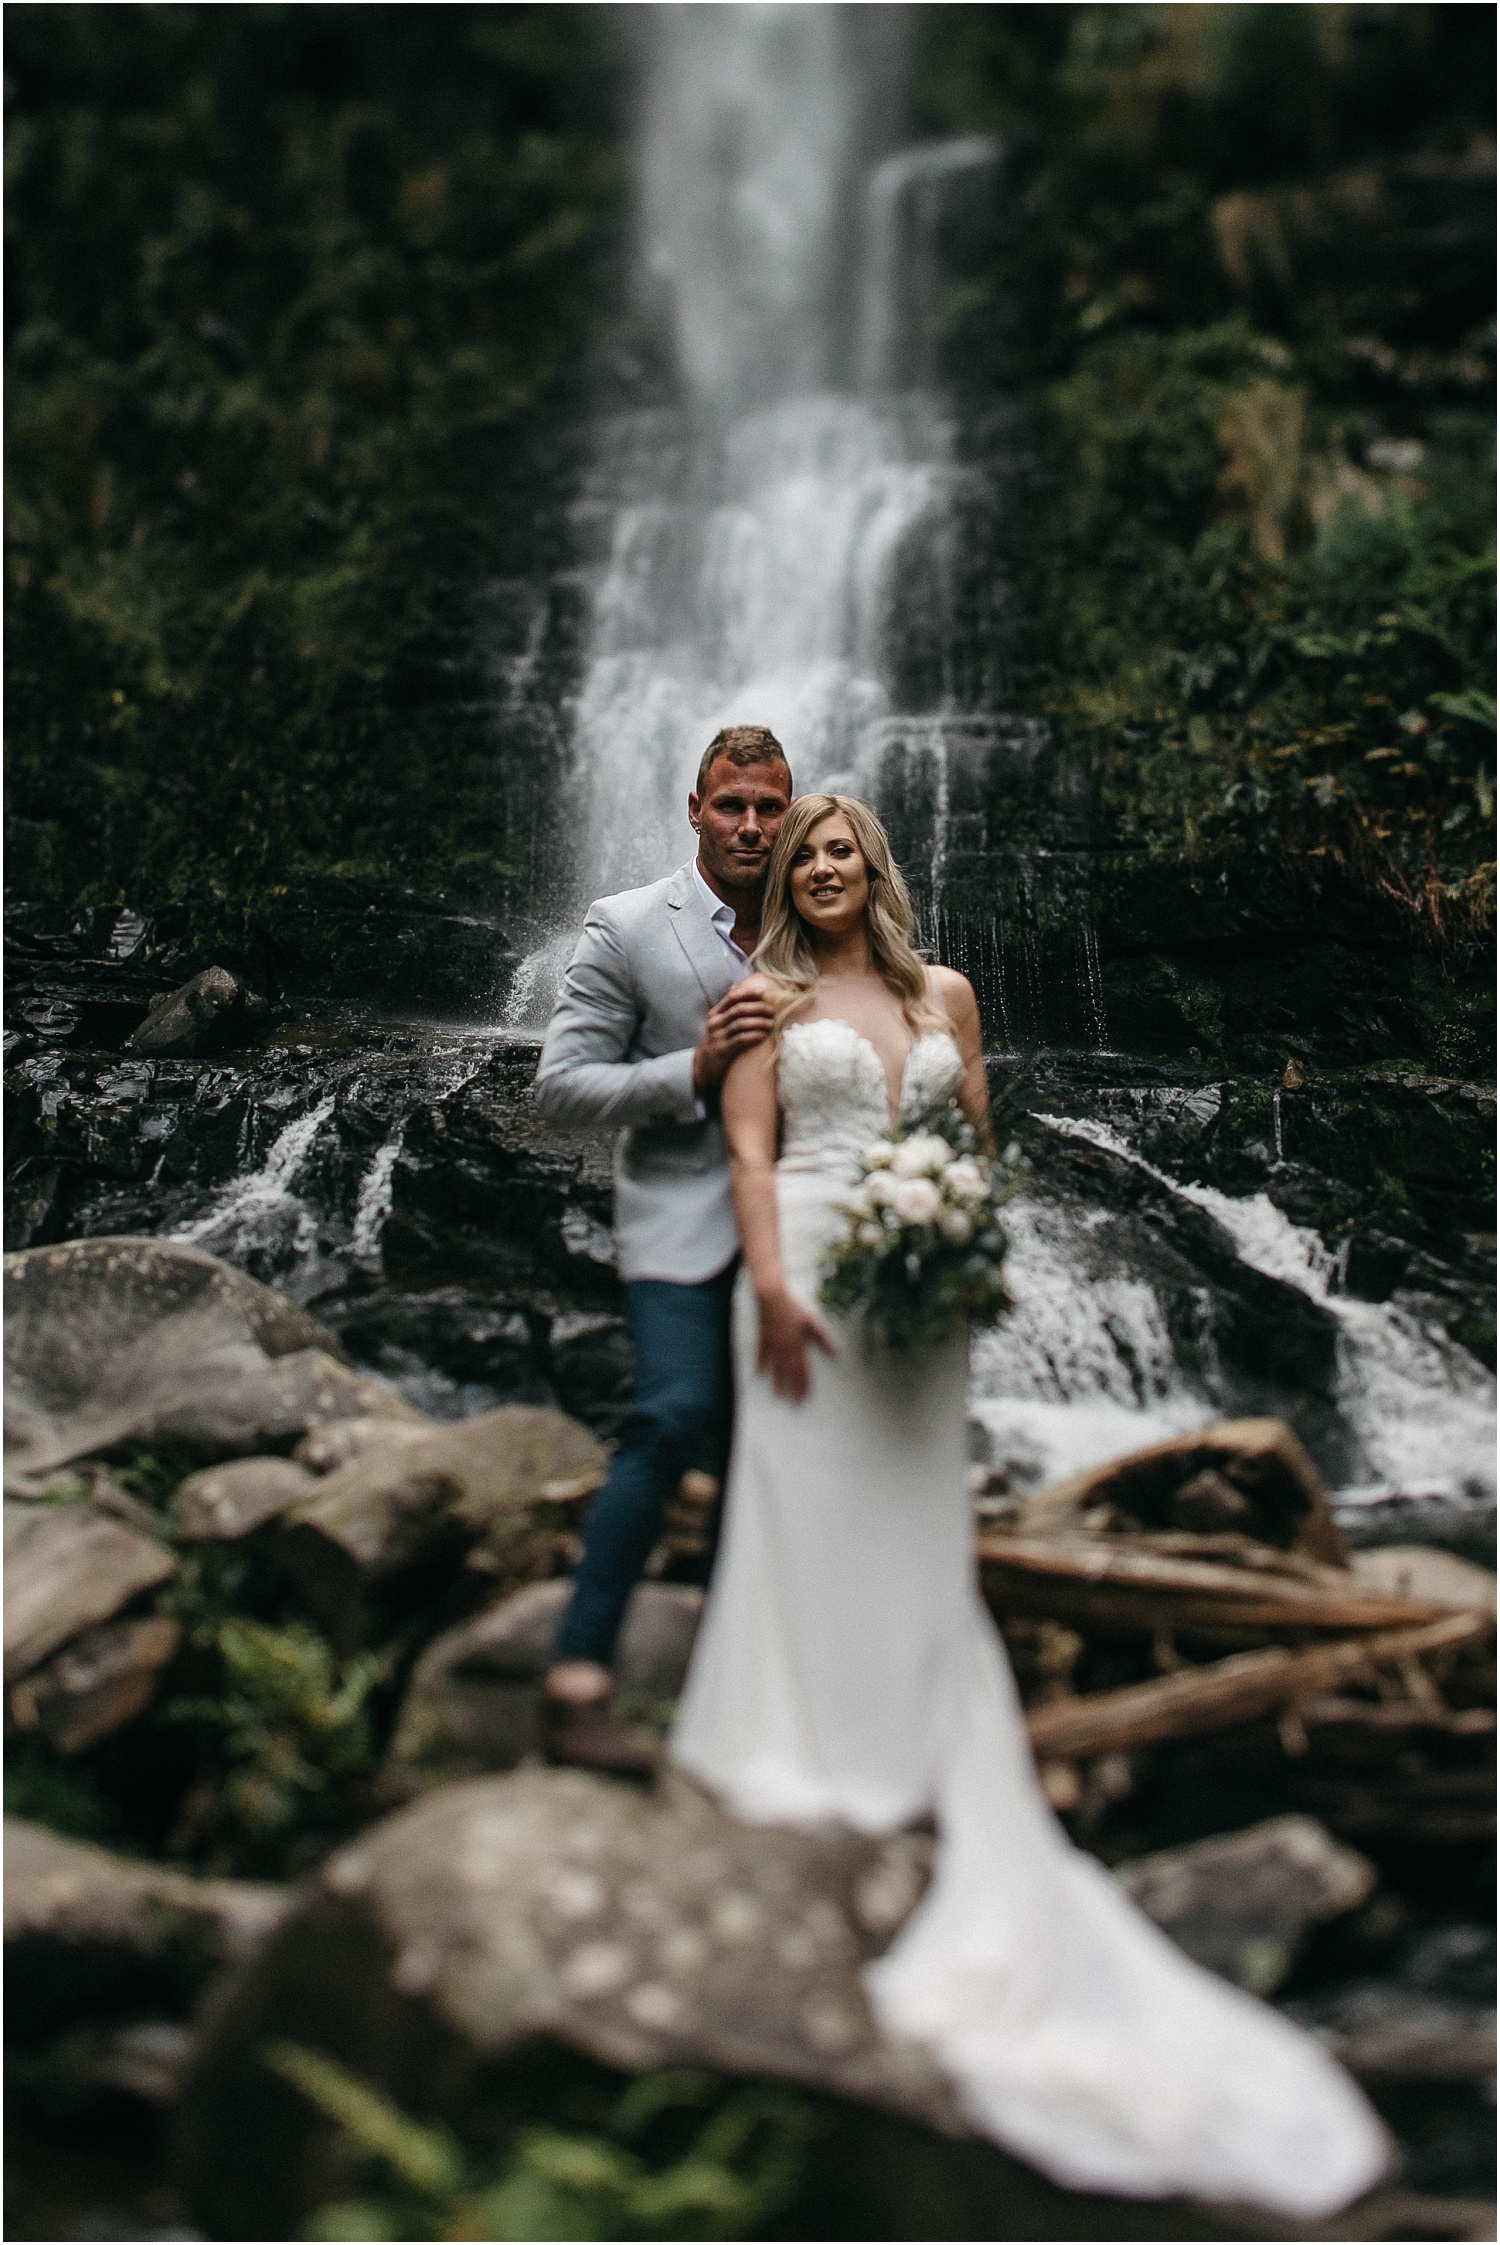 Renee and Ash's real elopement in Lorne on the Great Ocean Roadwith the ceremony at erskin falls._0094.jpg